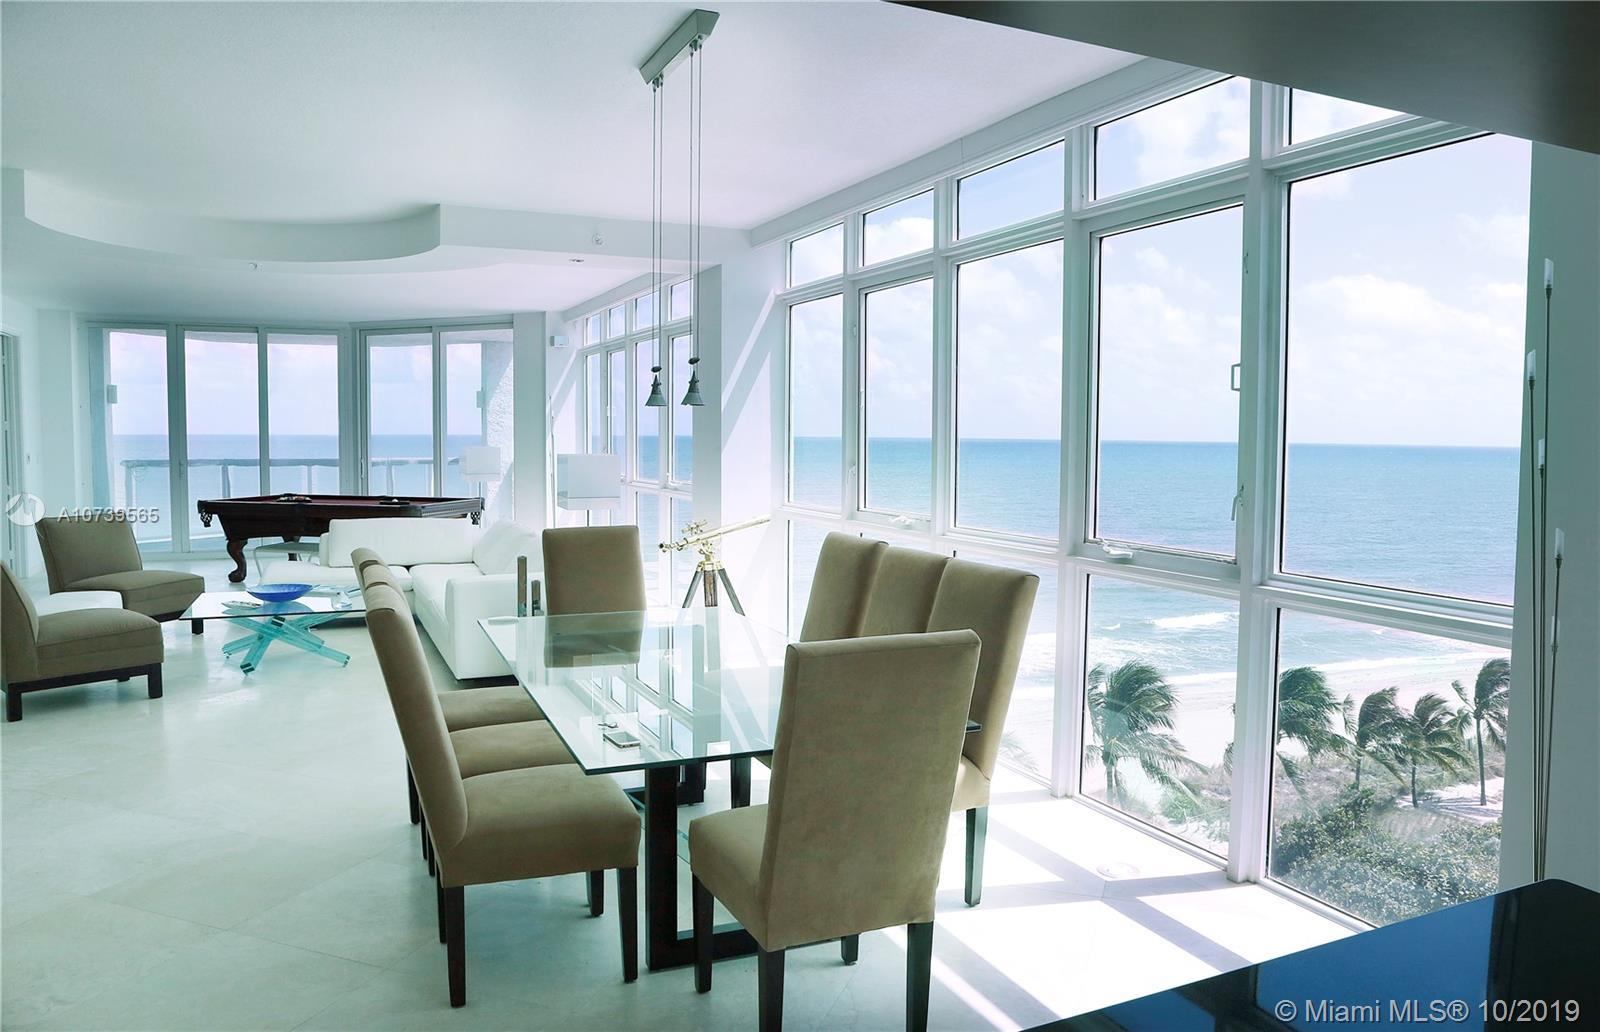 Sophisticated luxury boutique building, Cristelle Cay, Only 2 units per floor. Walls of glass with 9